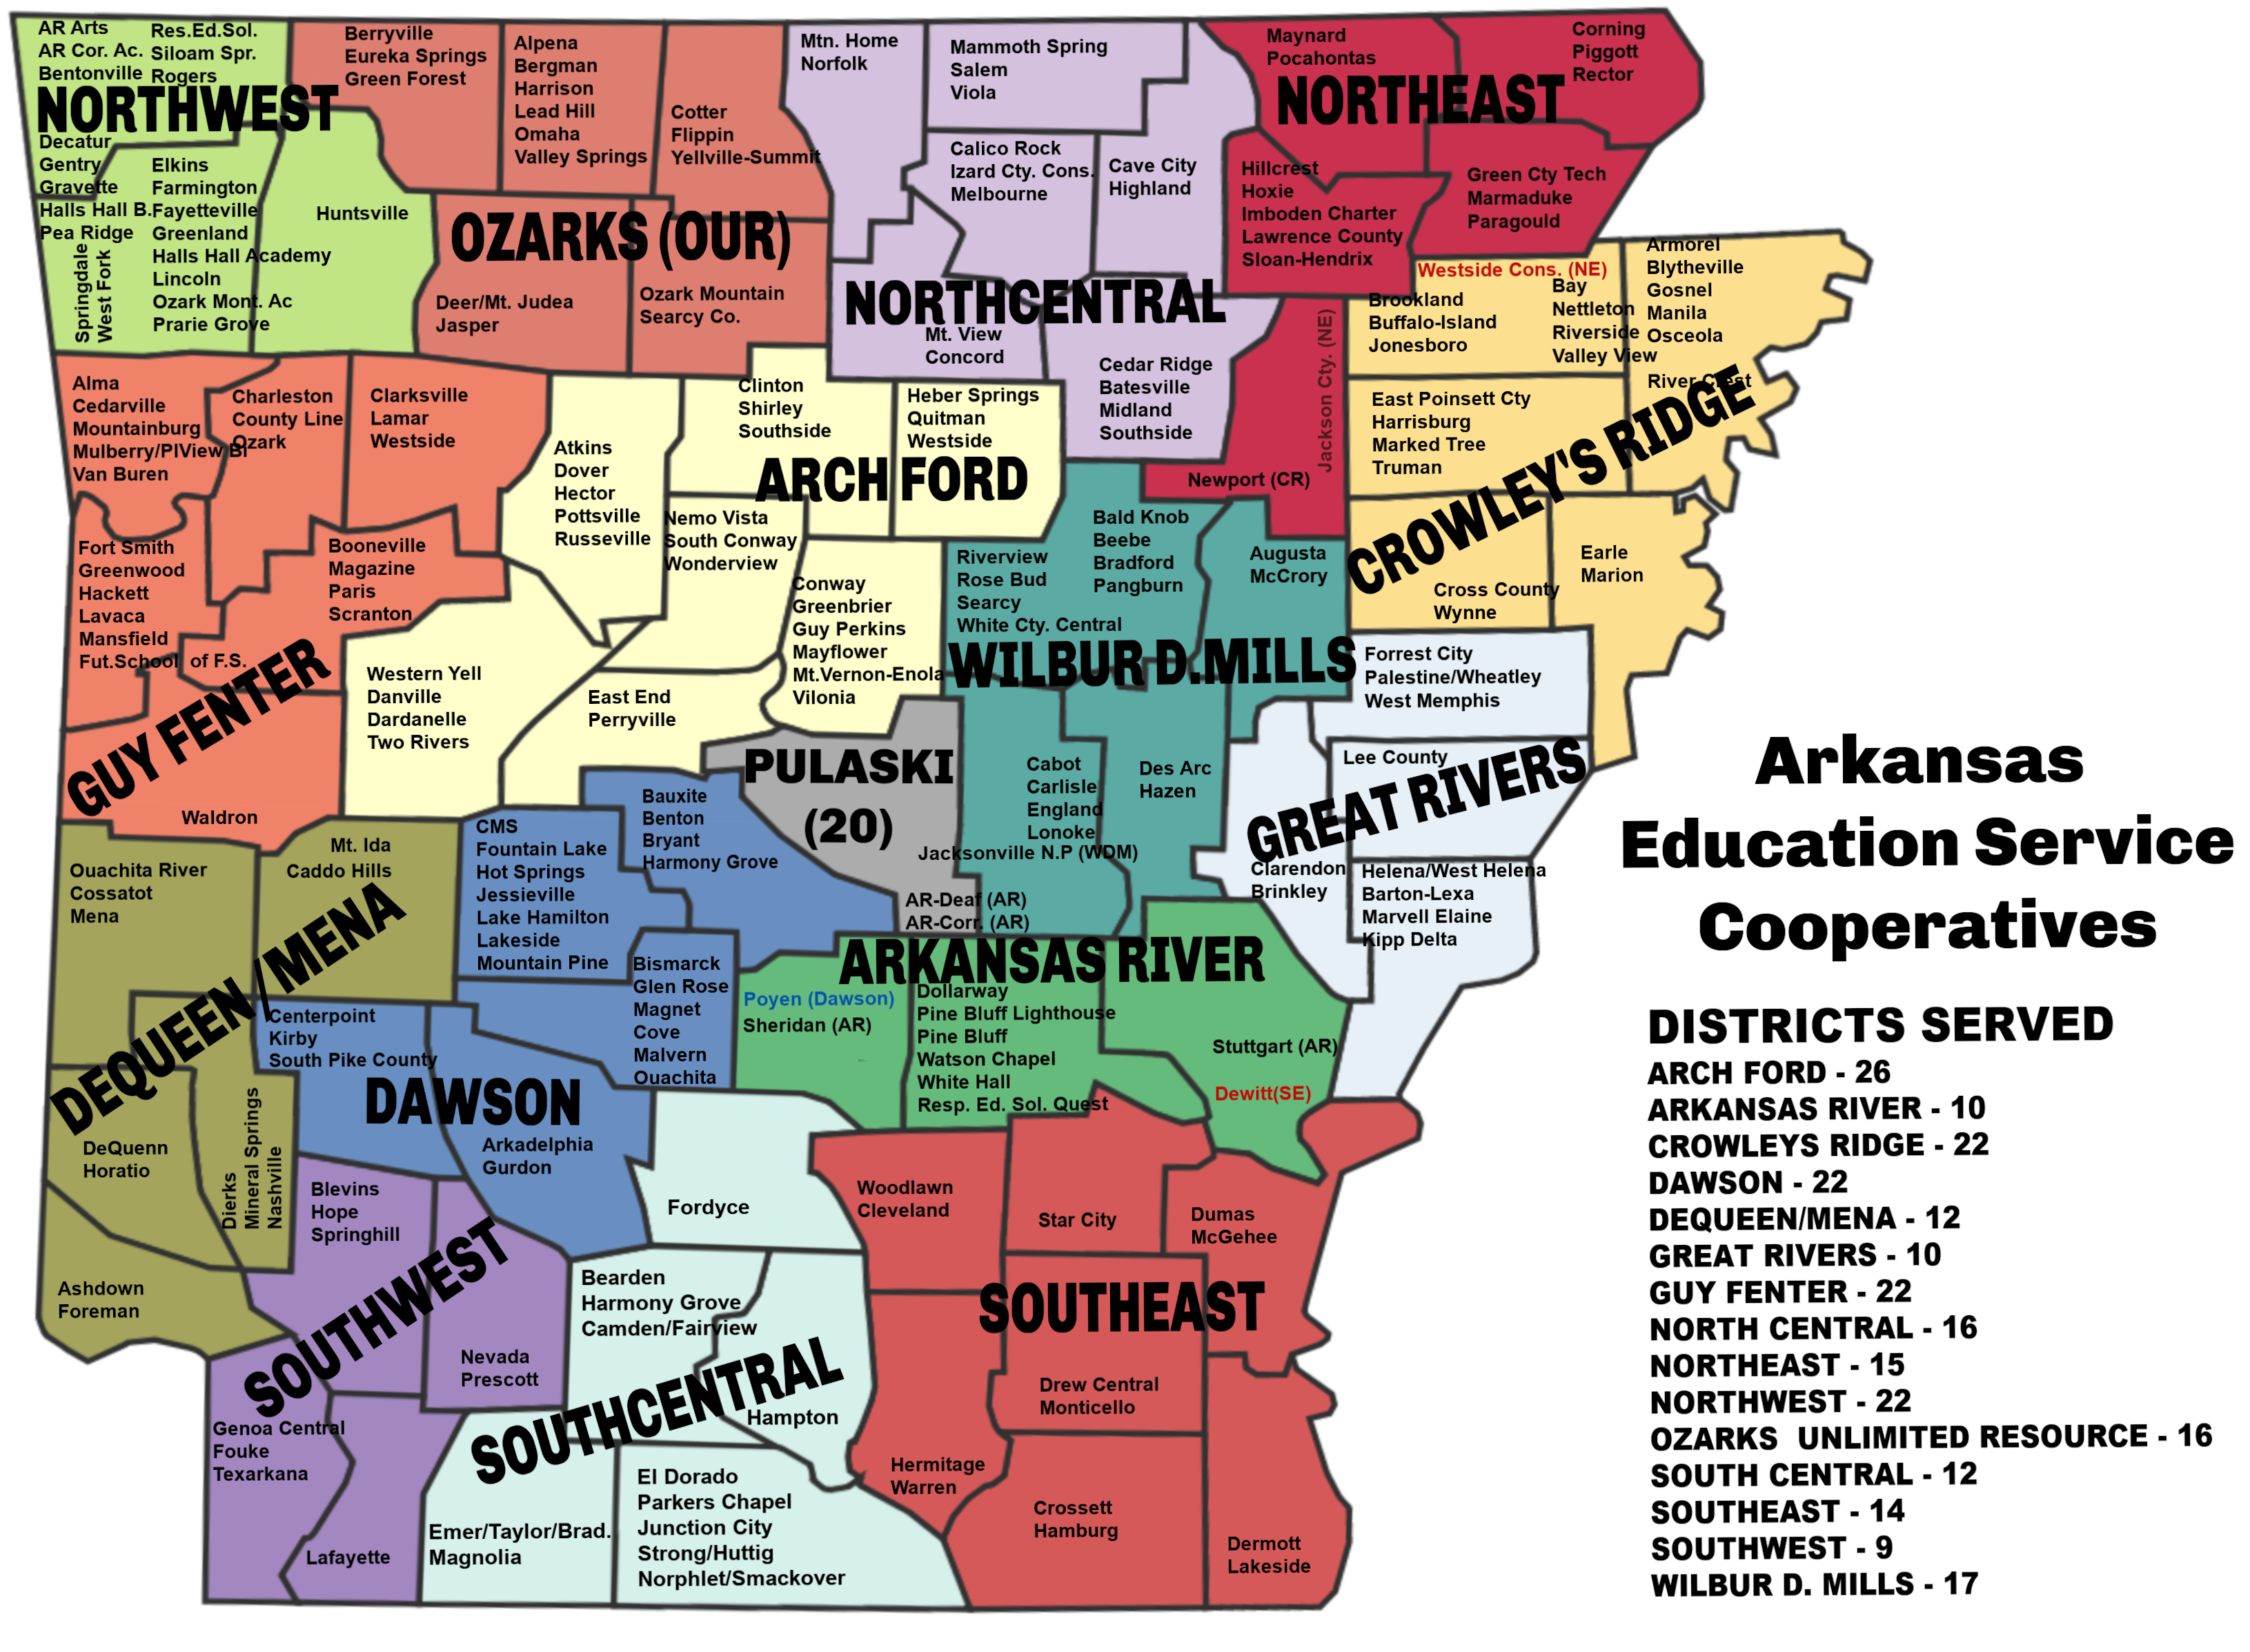 Map of Arkansas Education Service Cooperatives - Districts Served